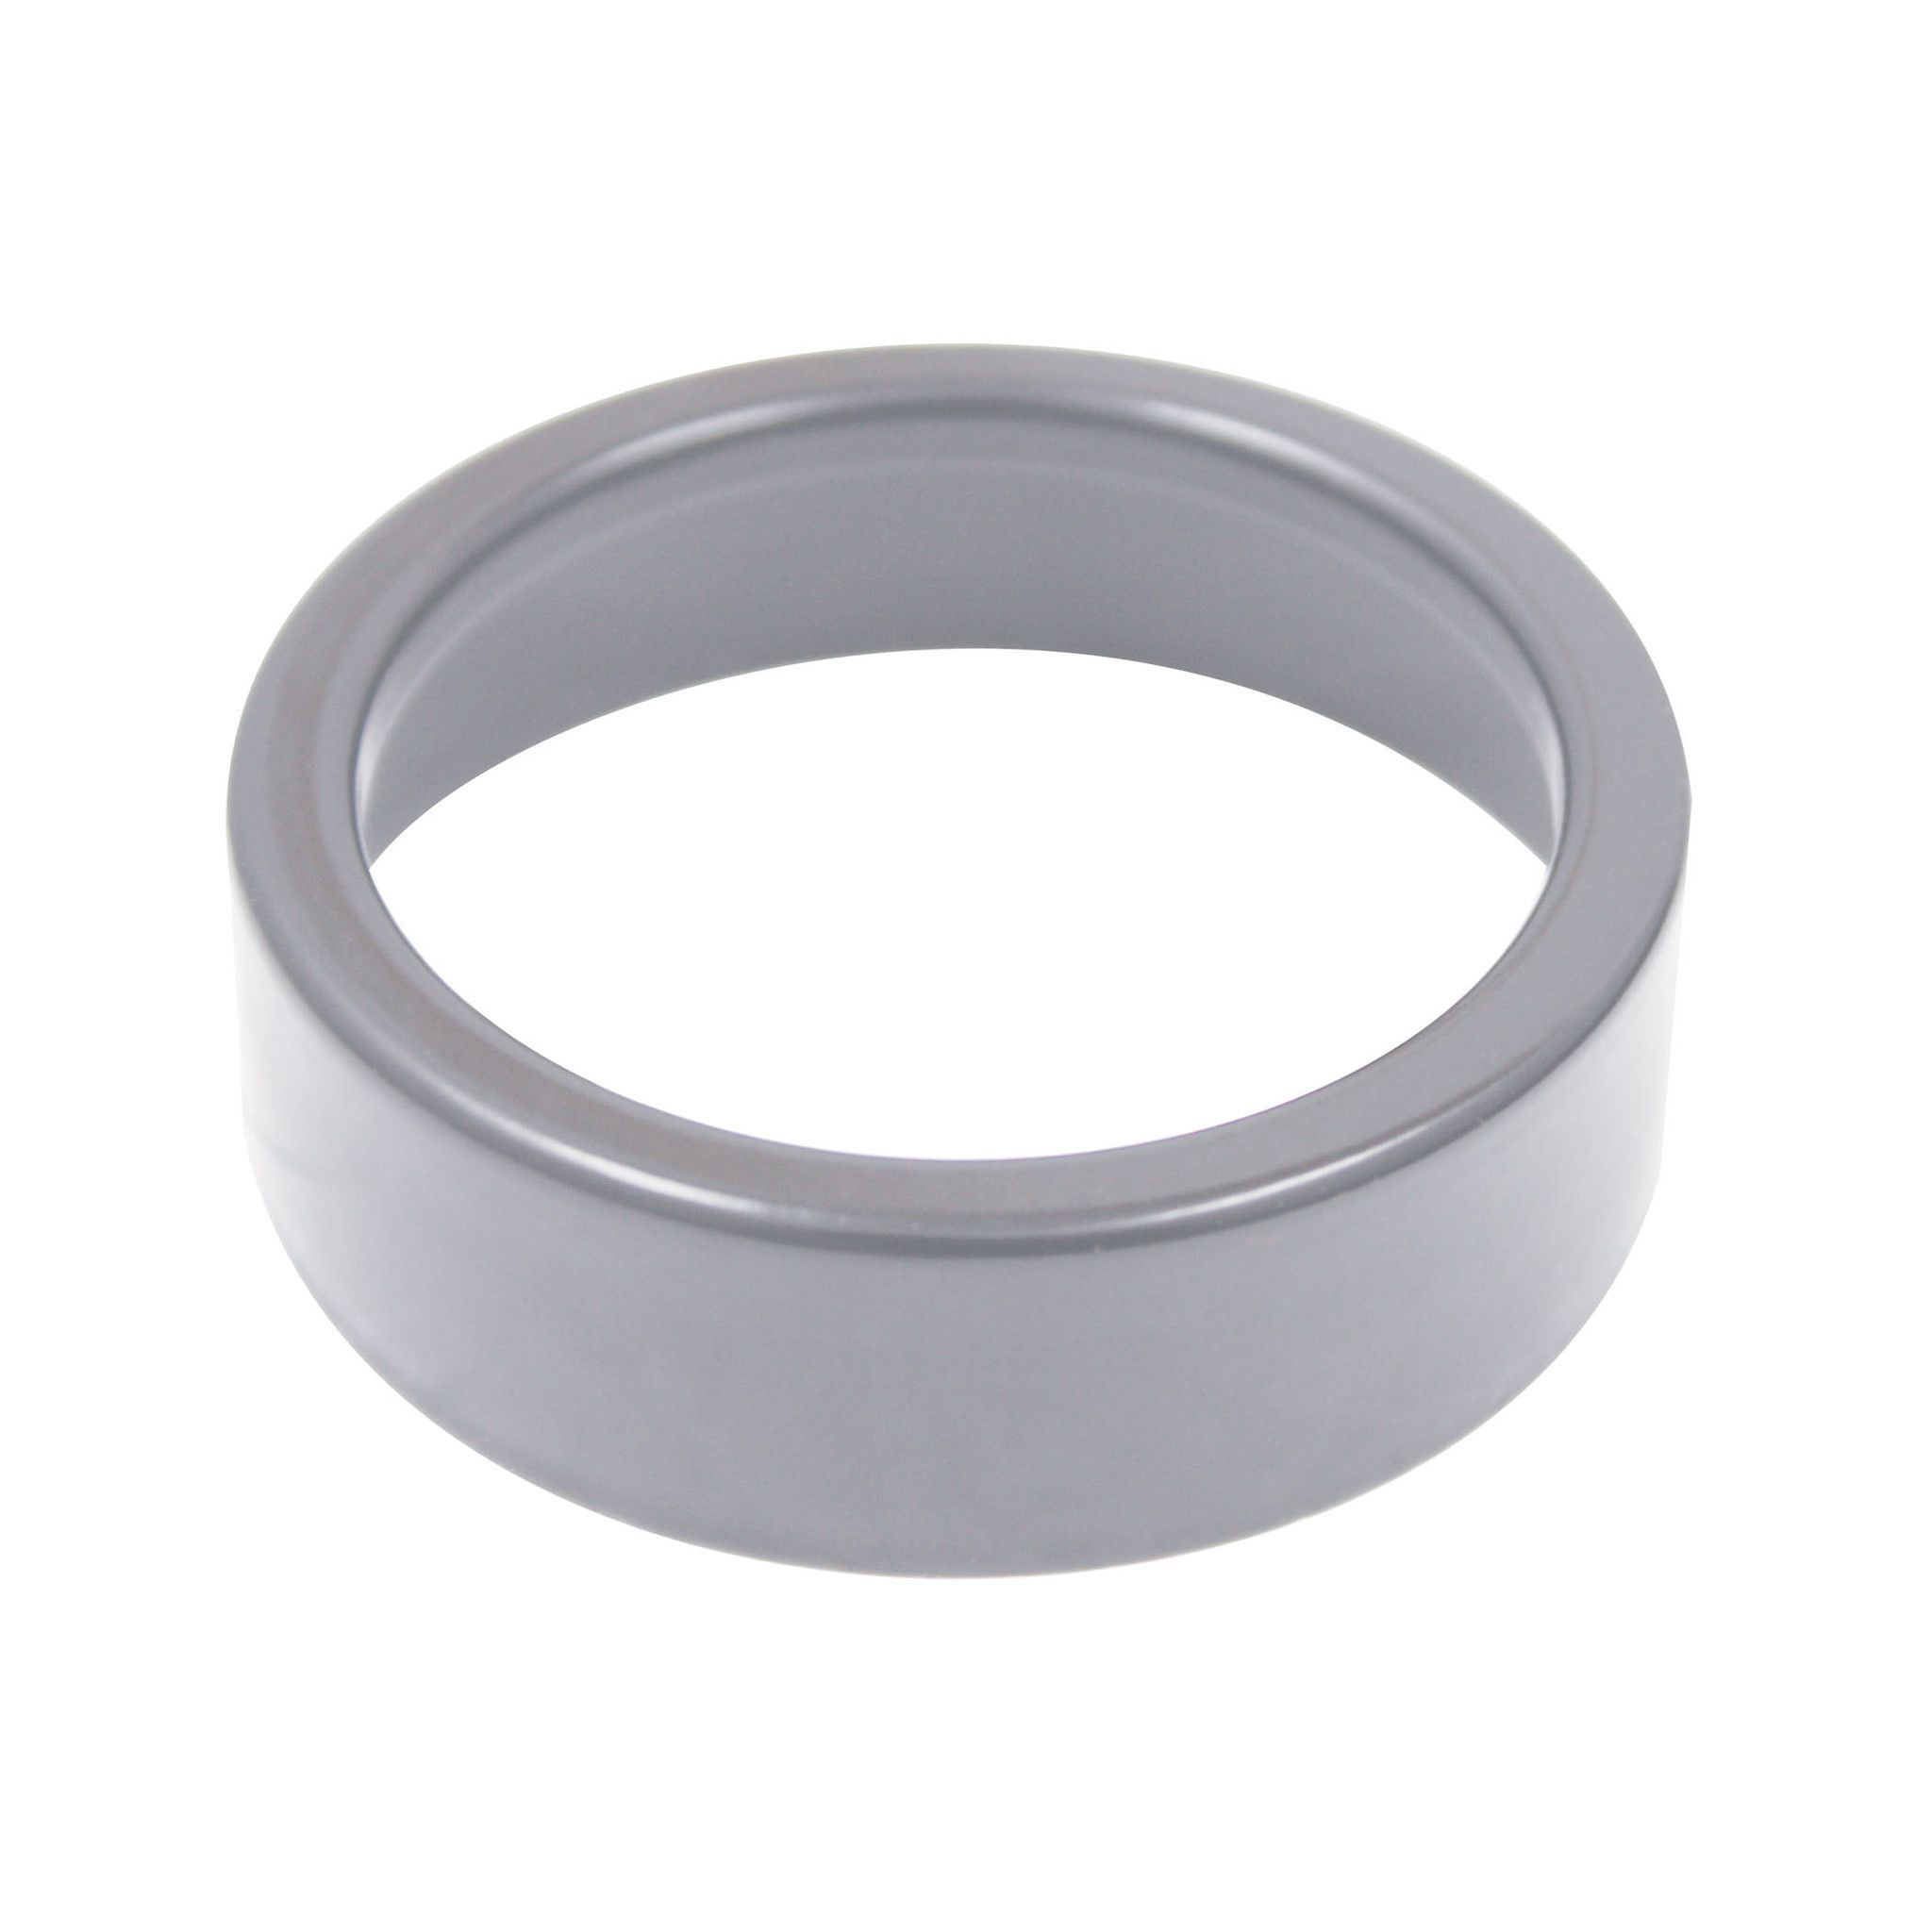 MiniPot Premium Recess Or Surface Mount Collar In Stainless Steel